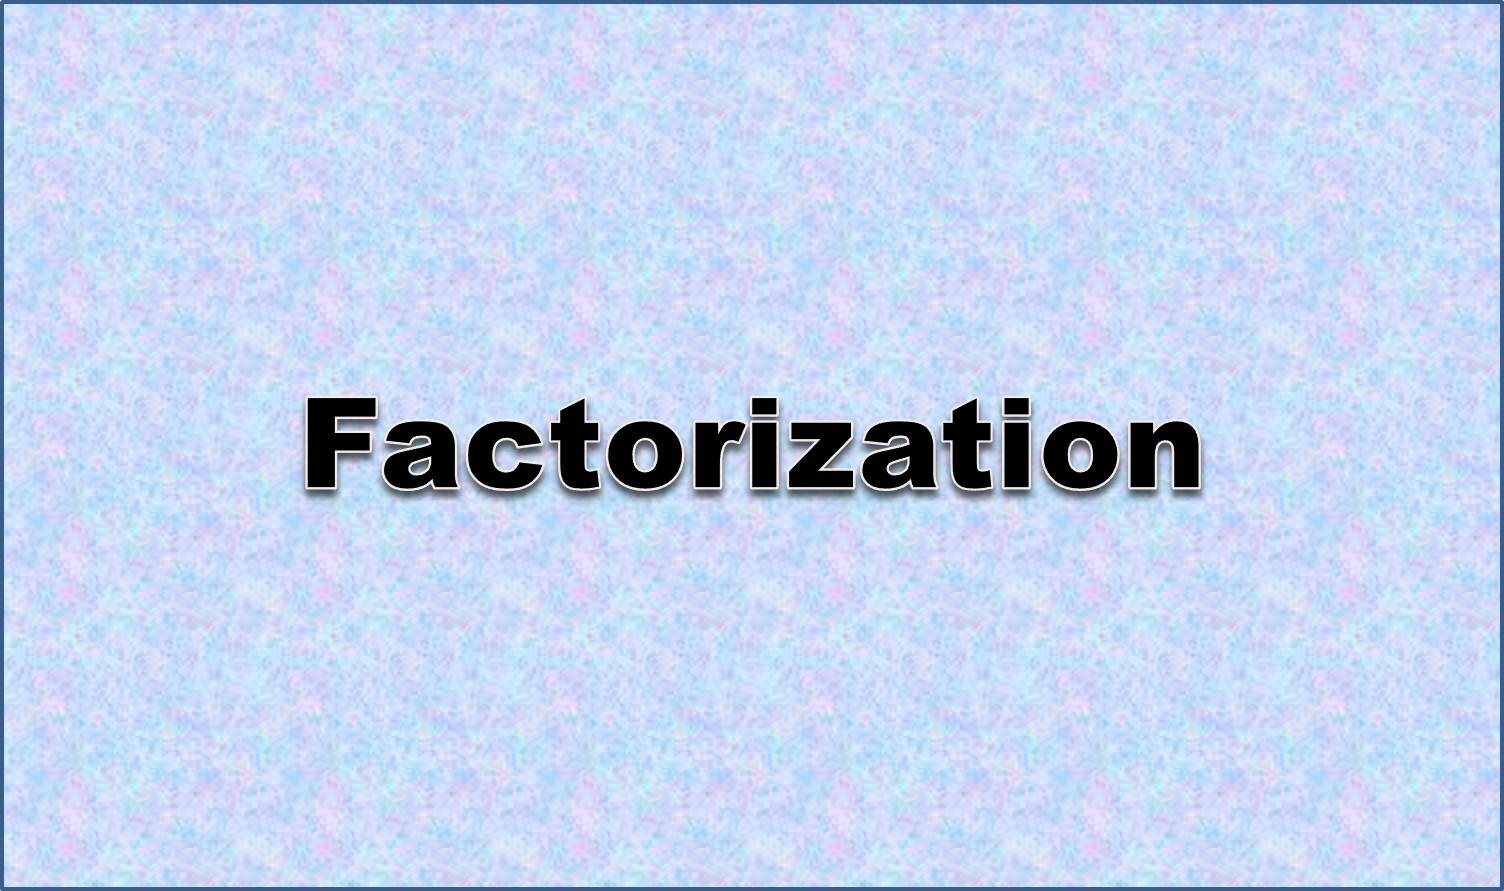 http://study.aisectonline.com/images/Factoring polynomials-common binomial factor.jpg